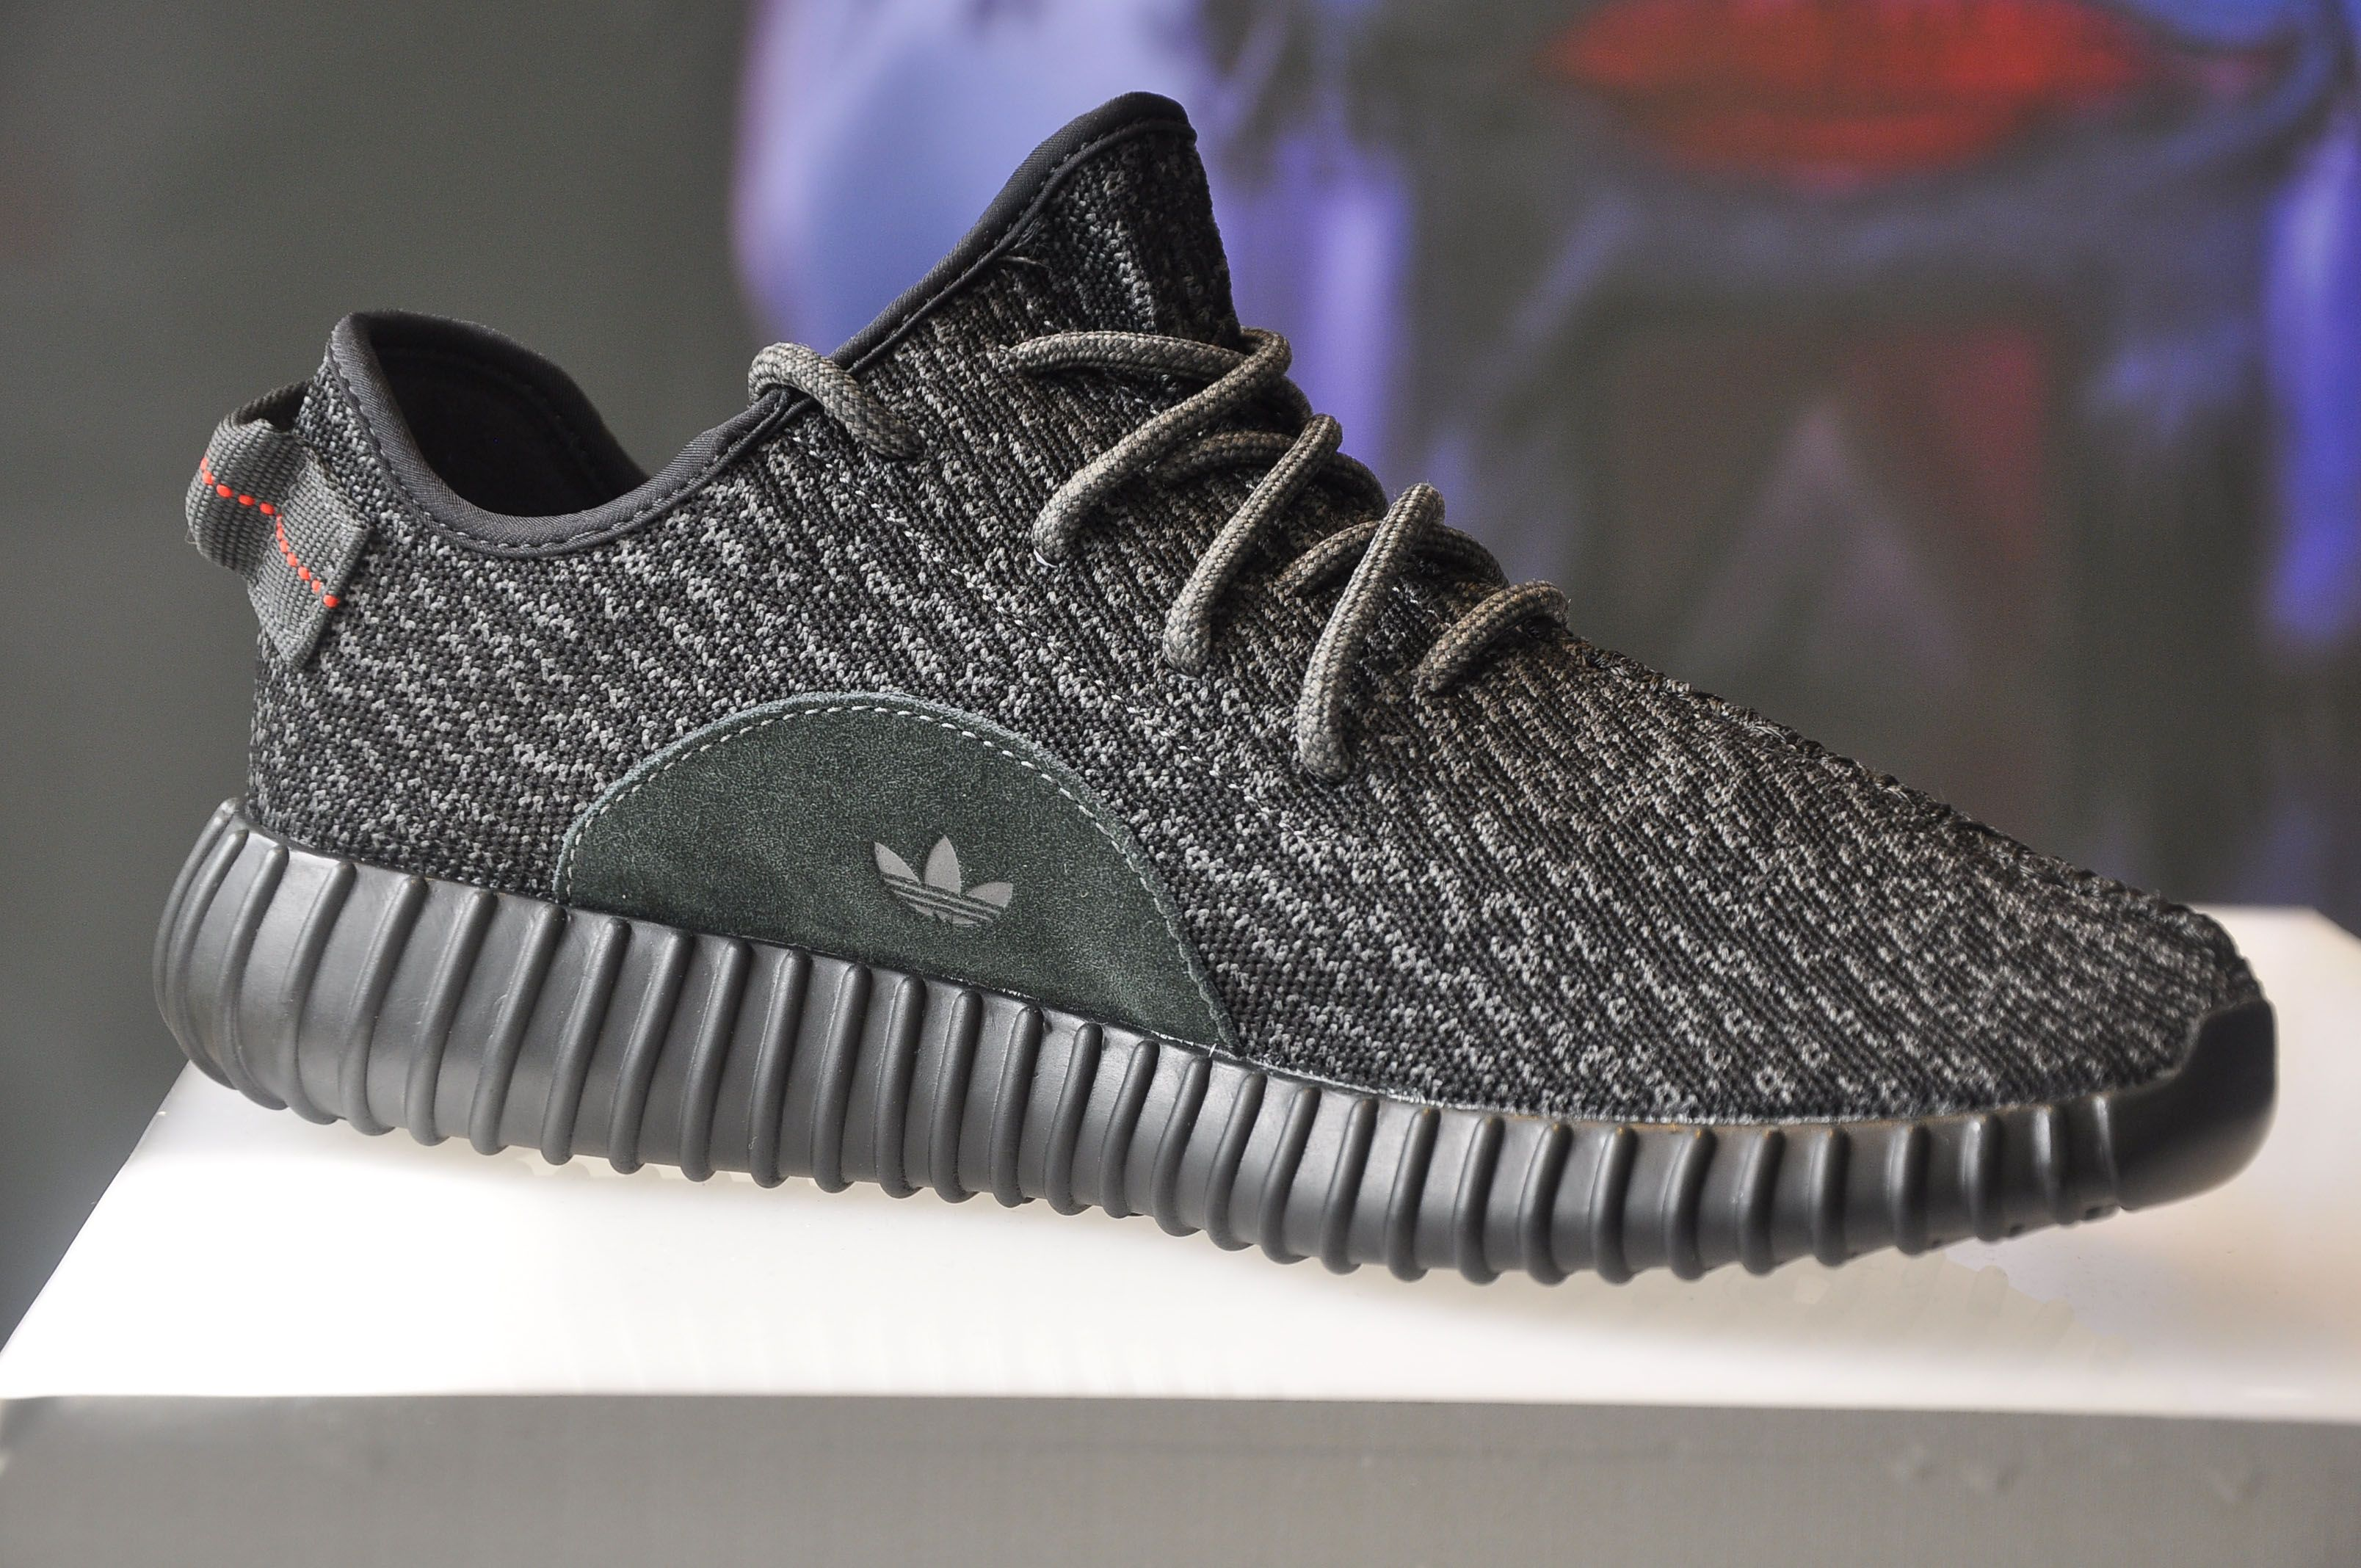 Here 's How Adidas Yeezy Boost 350 V2 Sneakers Get Made